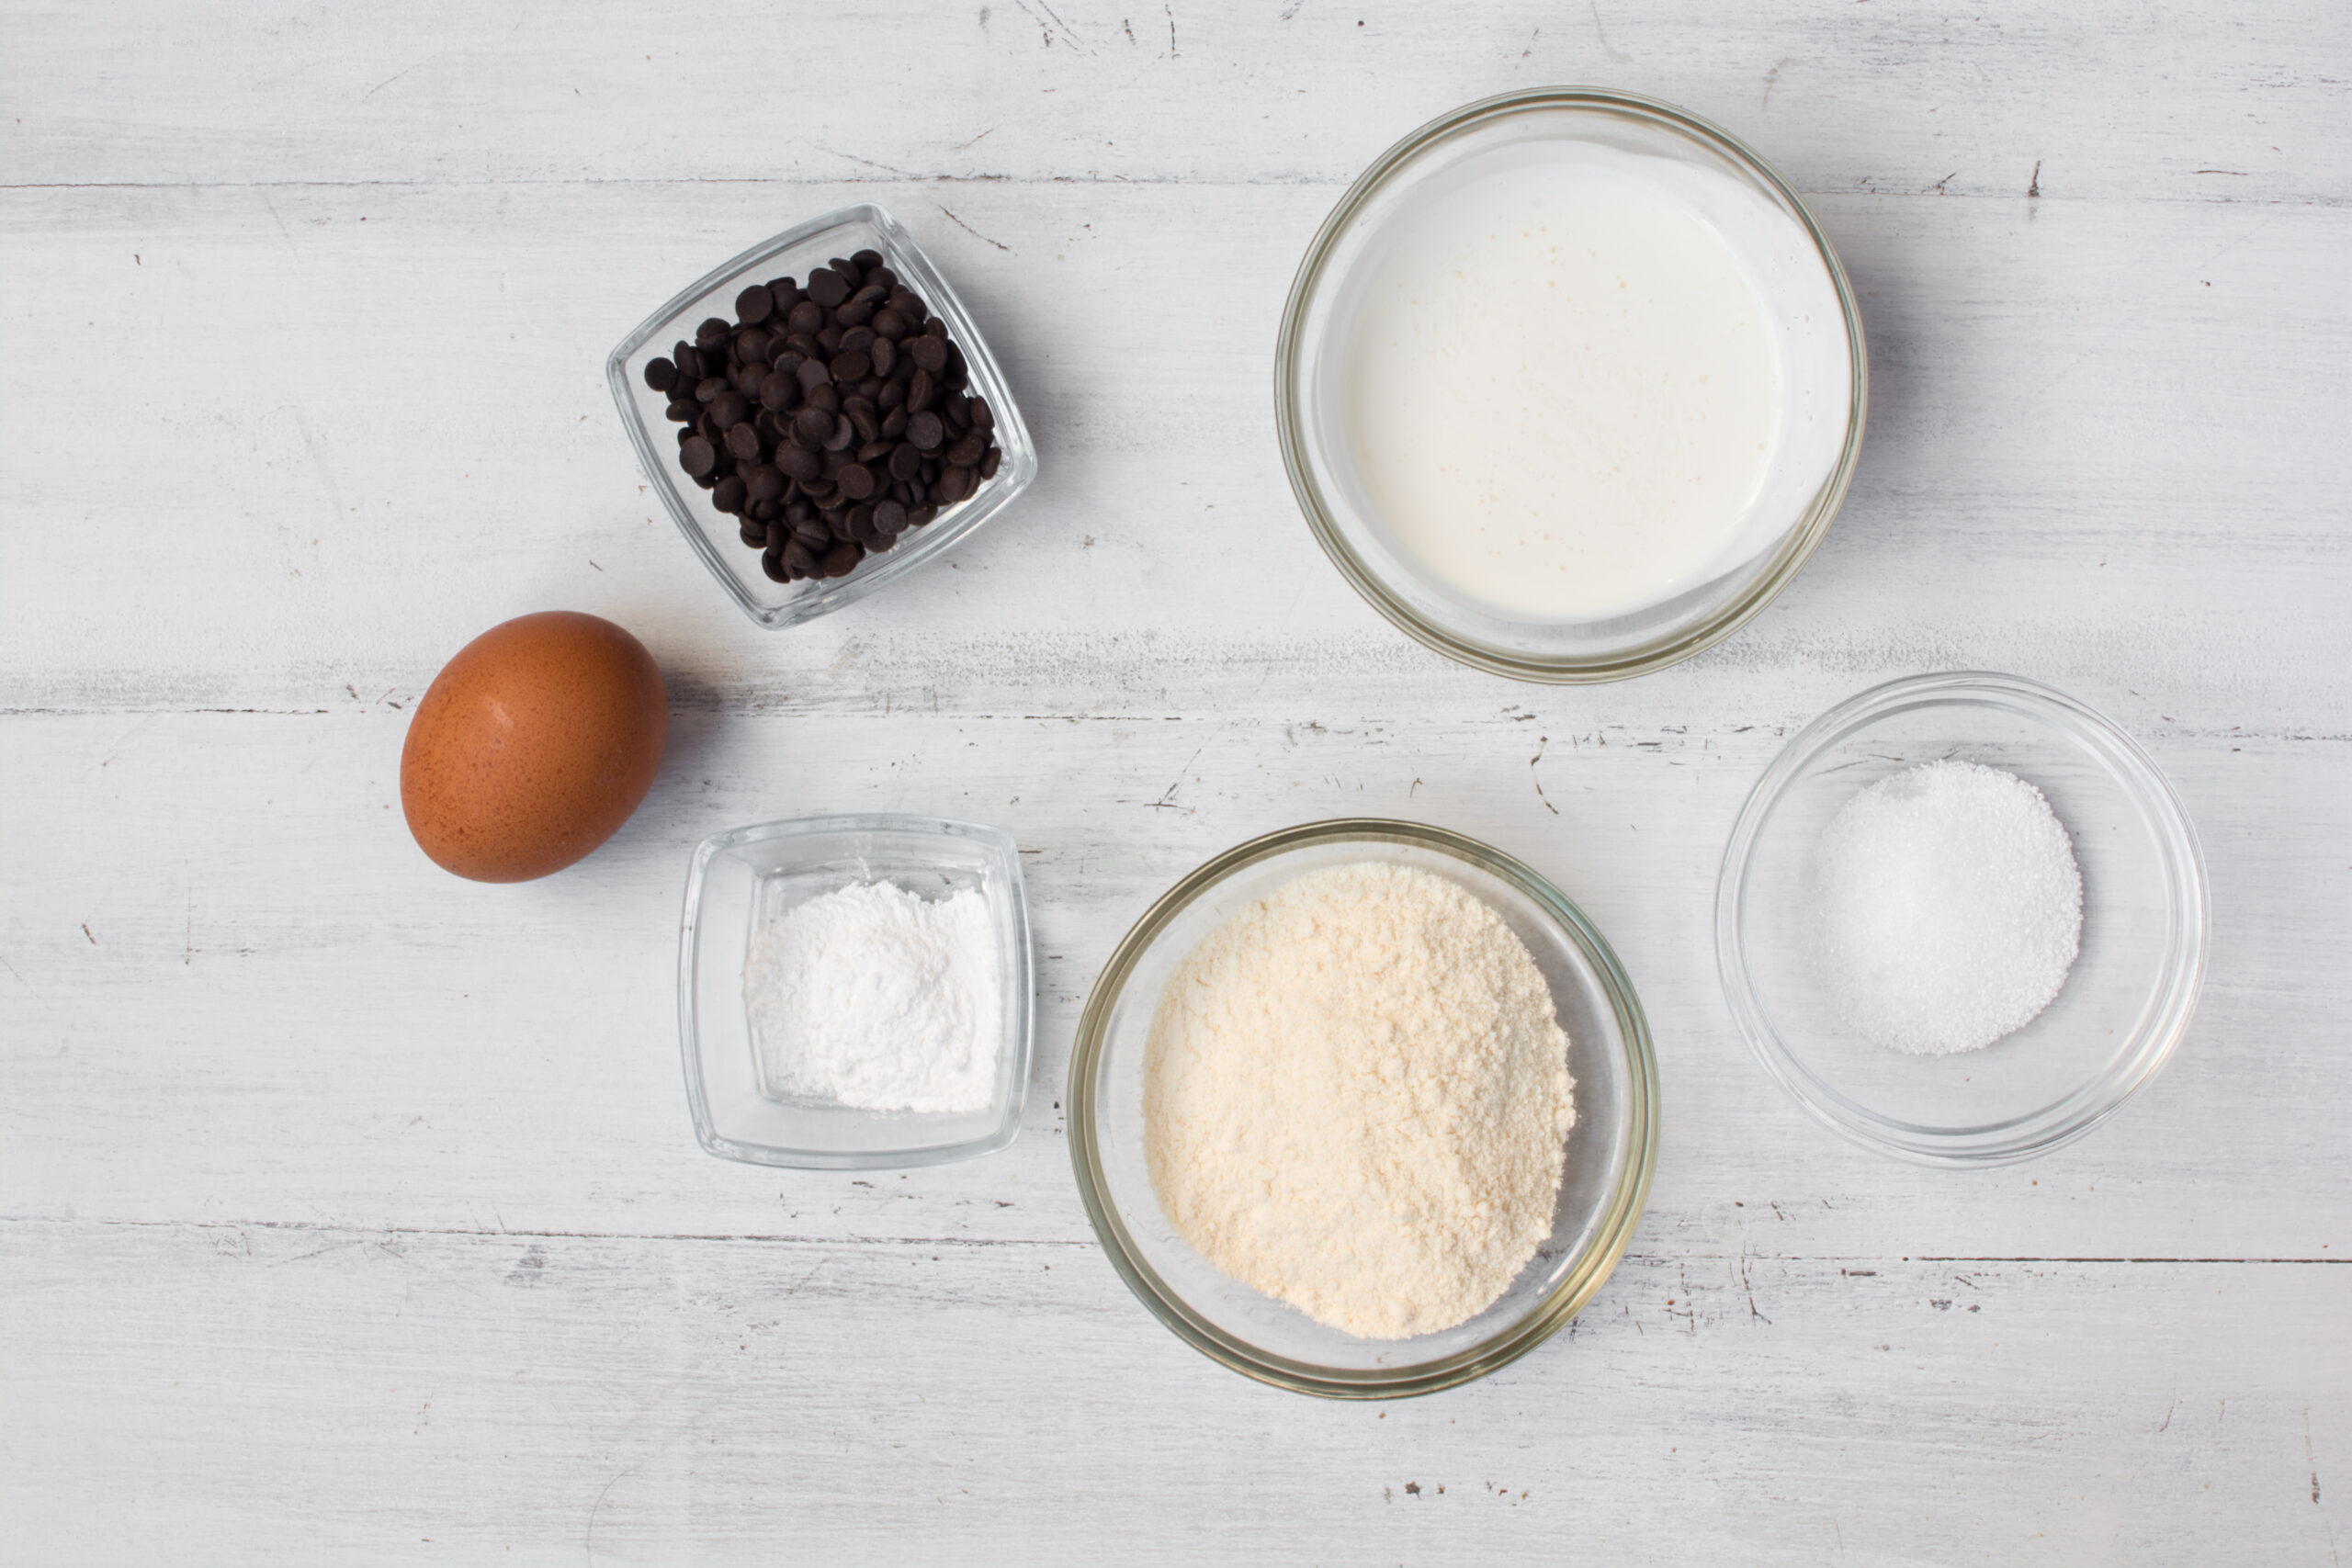 ingredients to make coconut muffins